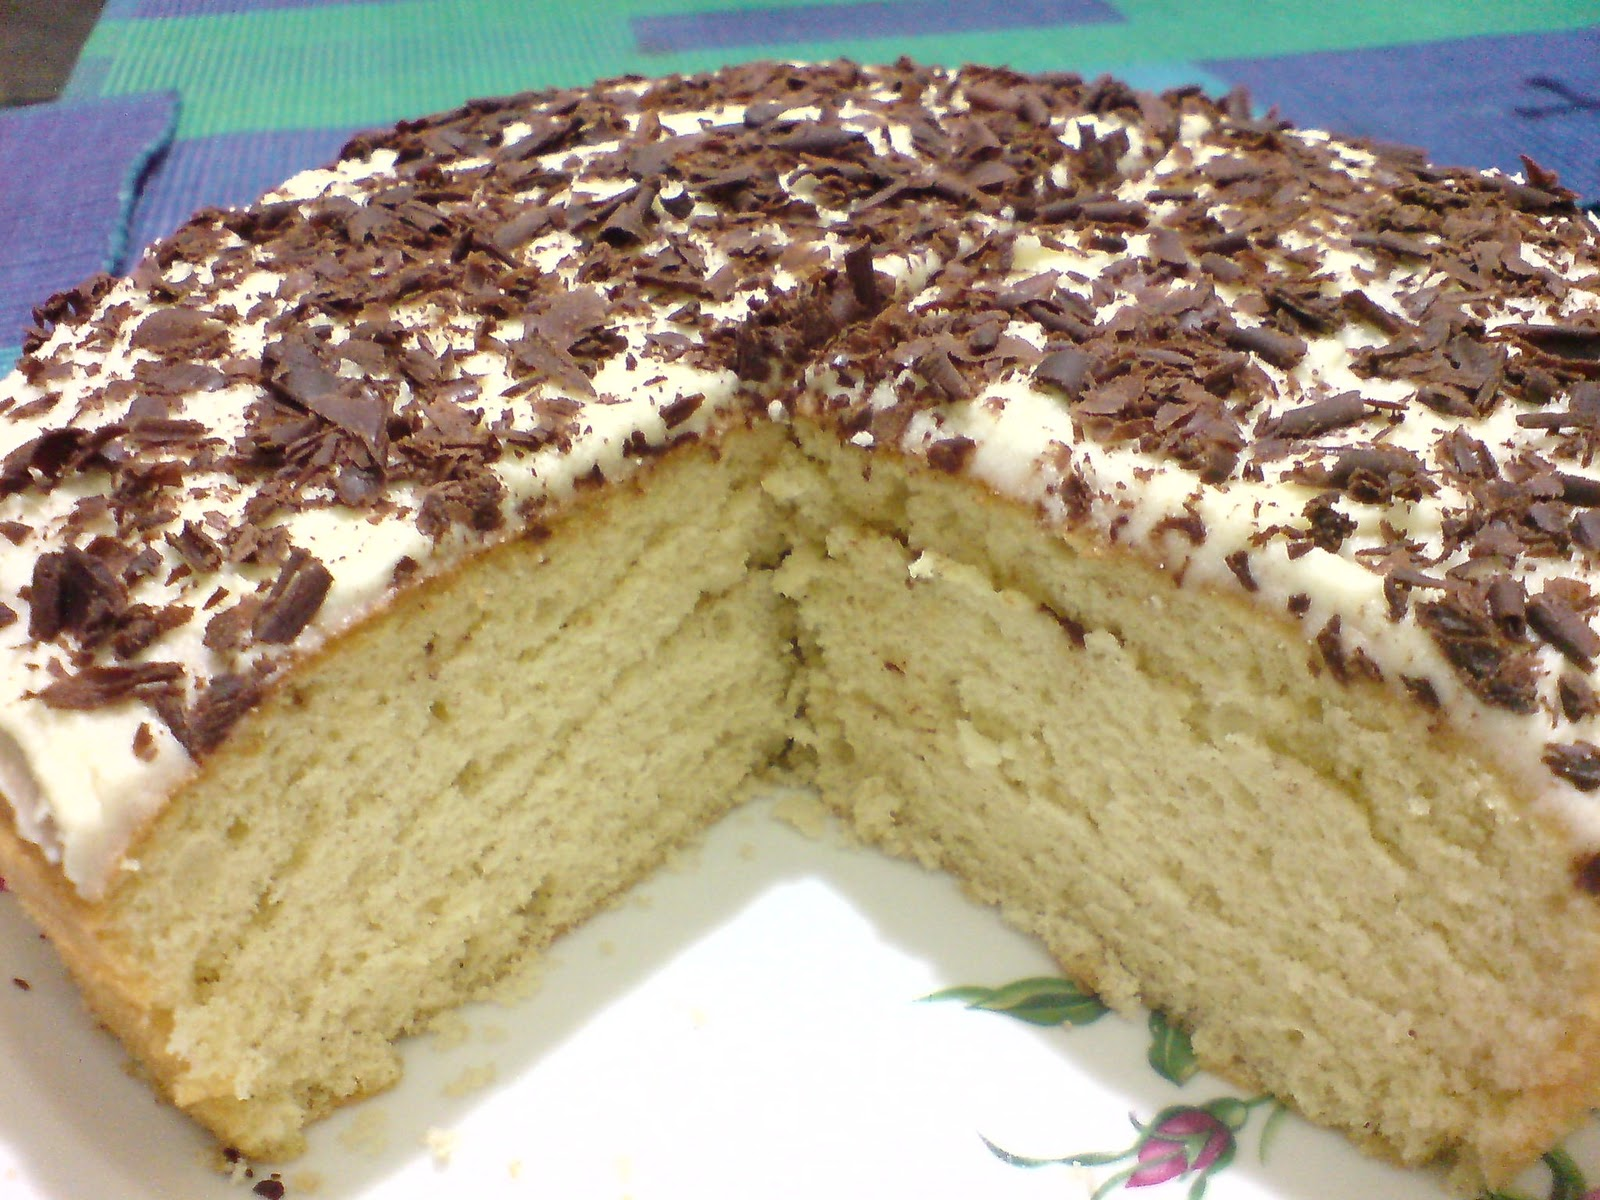 Sponge cake with butter icing recipe